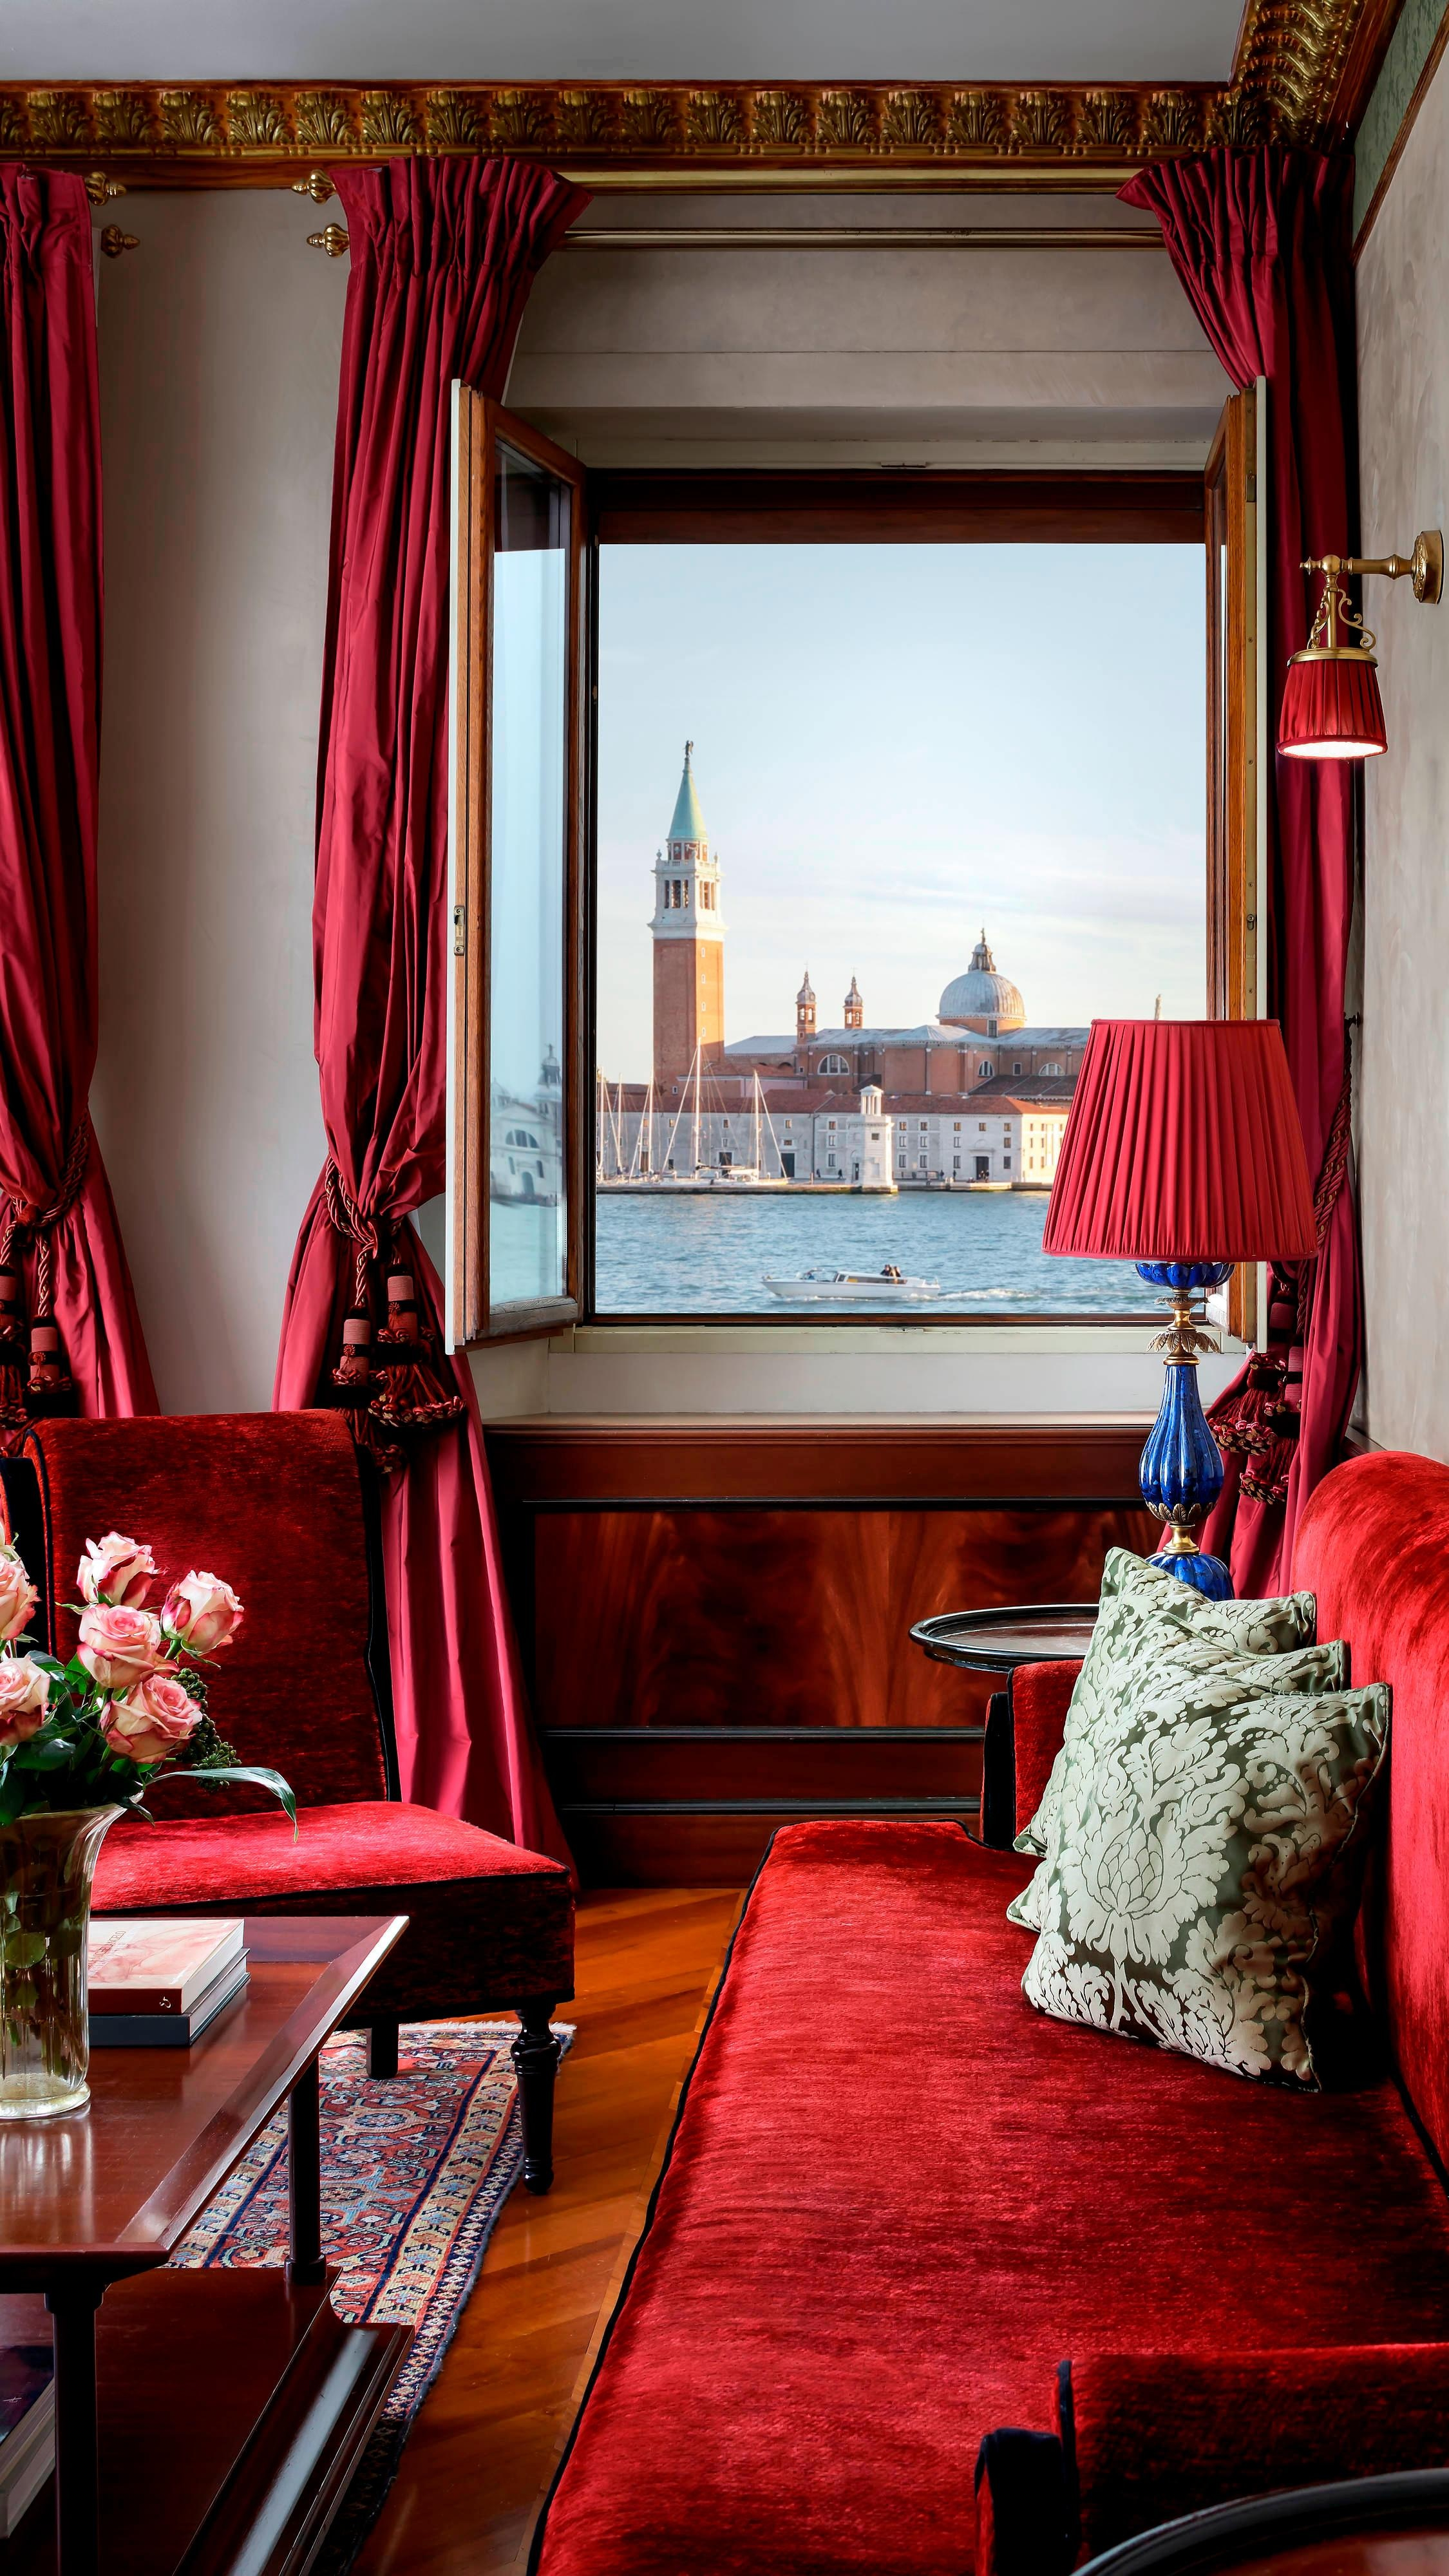 Lagoon View Suite - Living Room Palazzo Danieli Excelsior